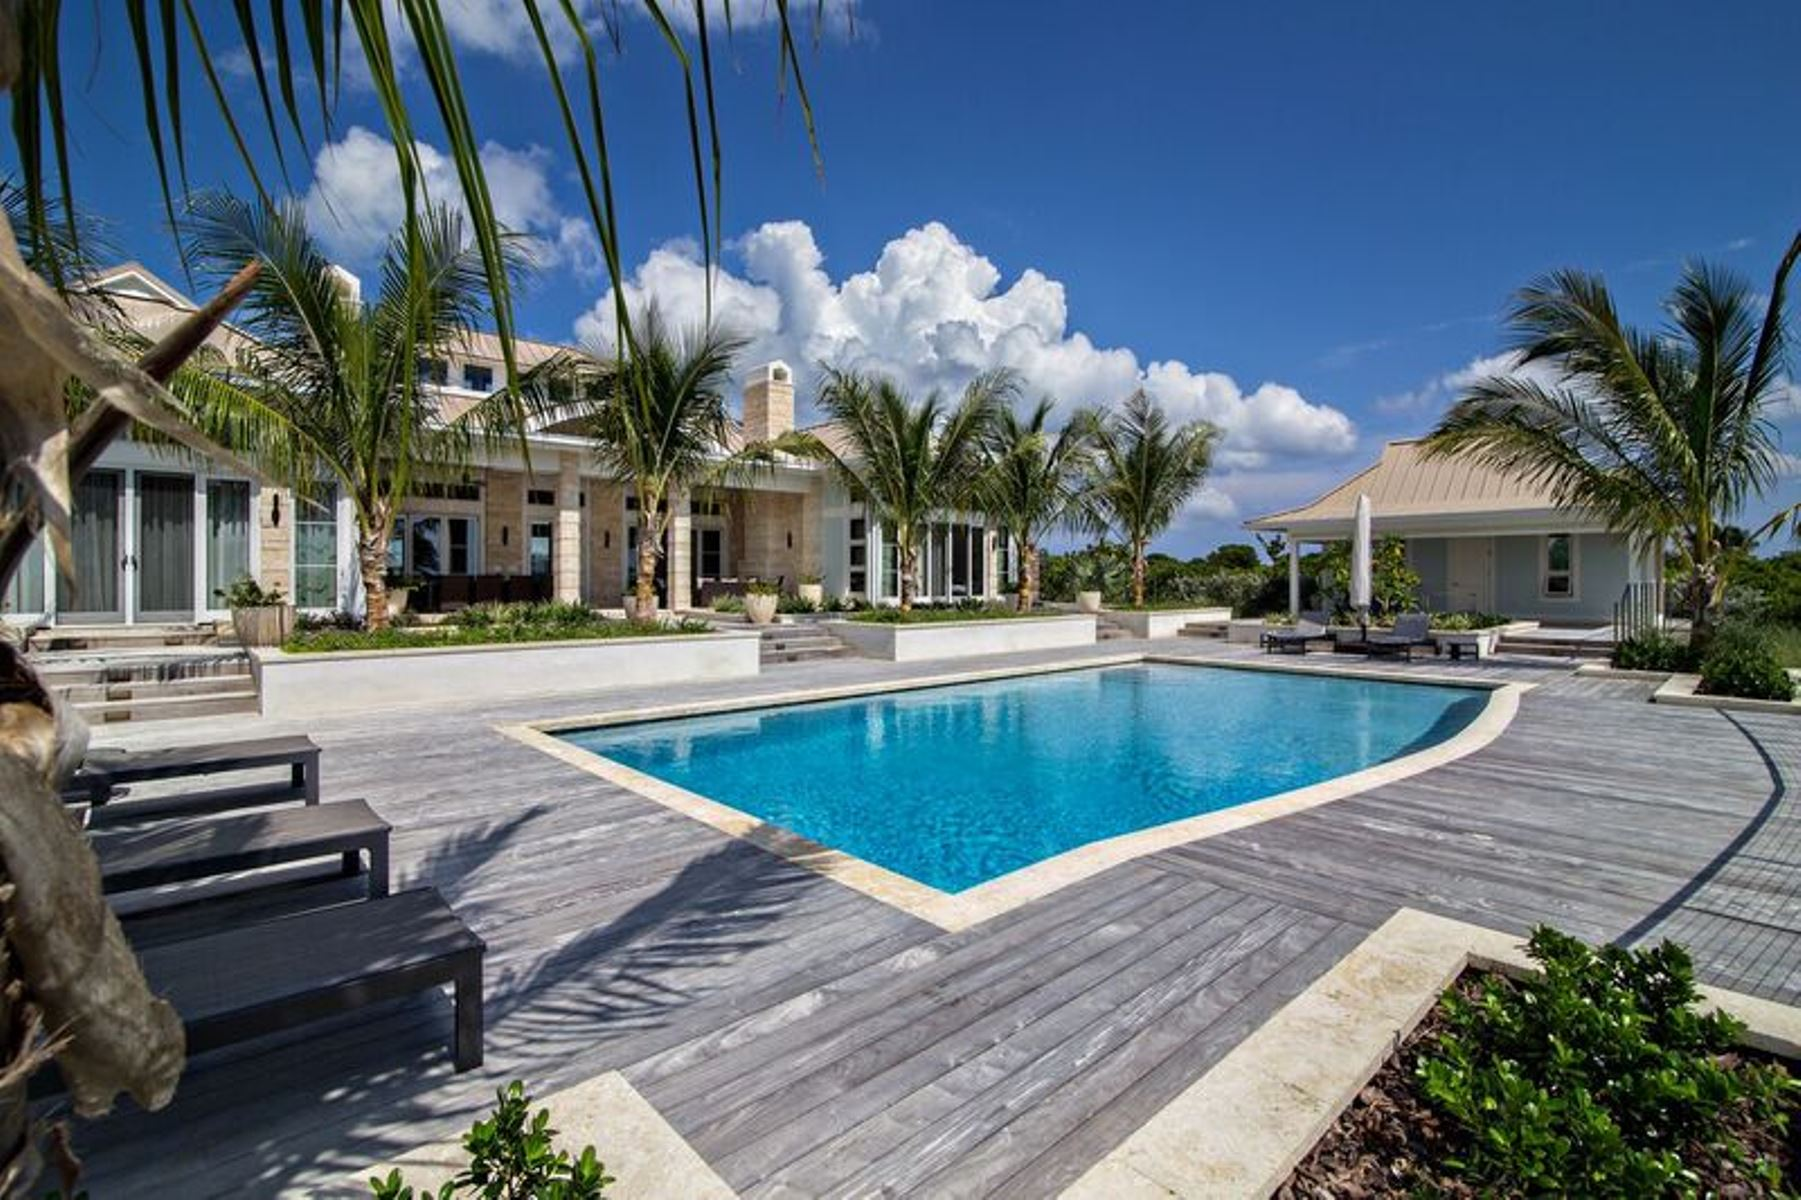 Single Family Home for Sale at Enchanting Home Located At The Abaco Club on Winding Bay (MLS 27799) Winding Bay, Abaco, Bahamas